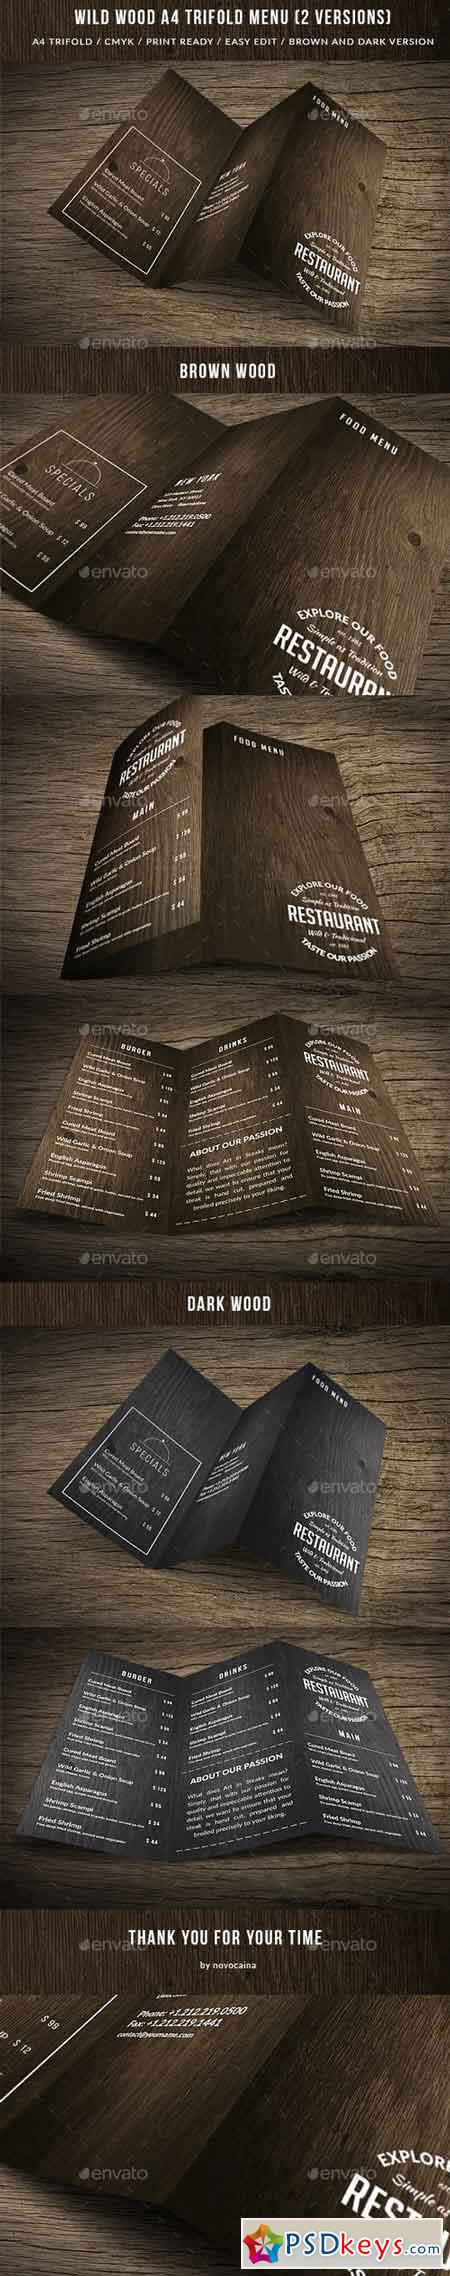 Wild Wood A4 TriFold Menu - 2 Versions 15647677